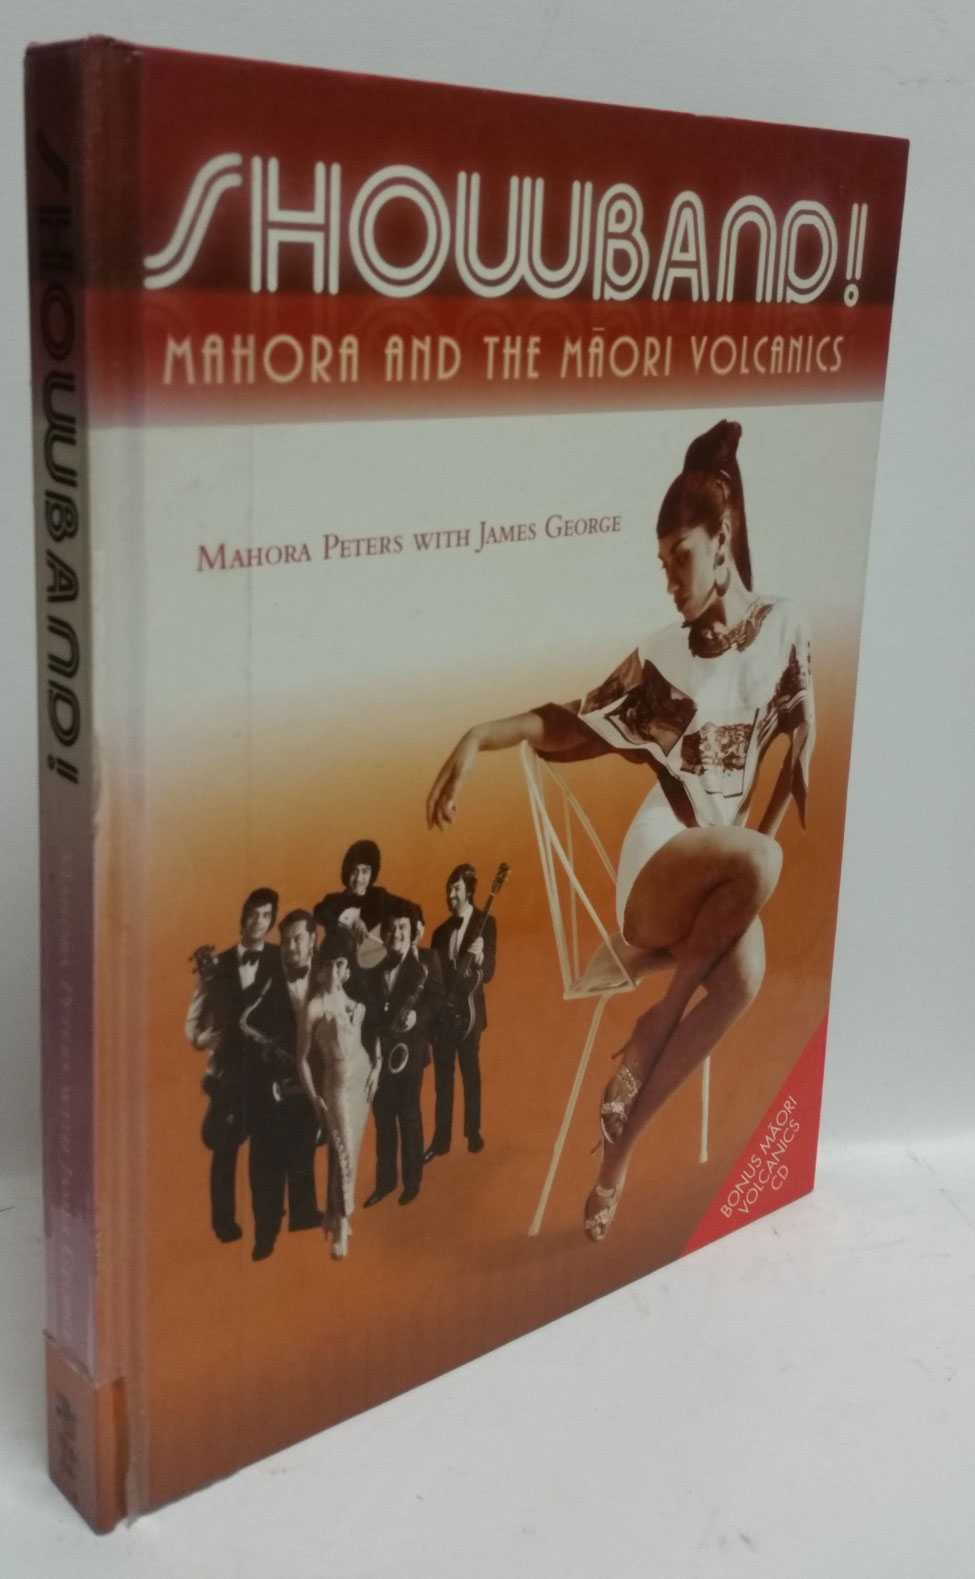 Showband! Mahora and the Mahori Volcanics, Mahora Peters; James George